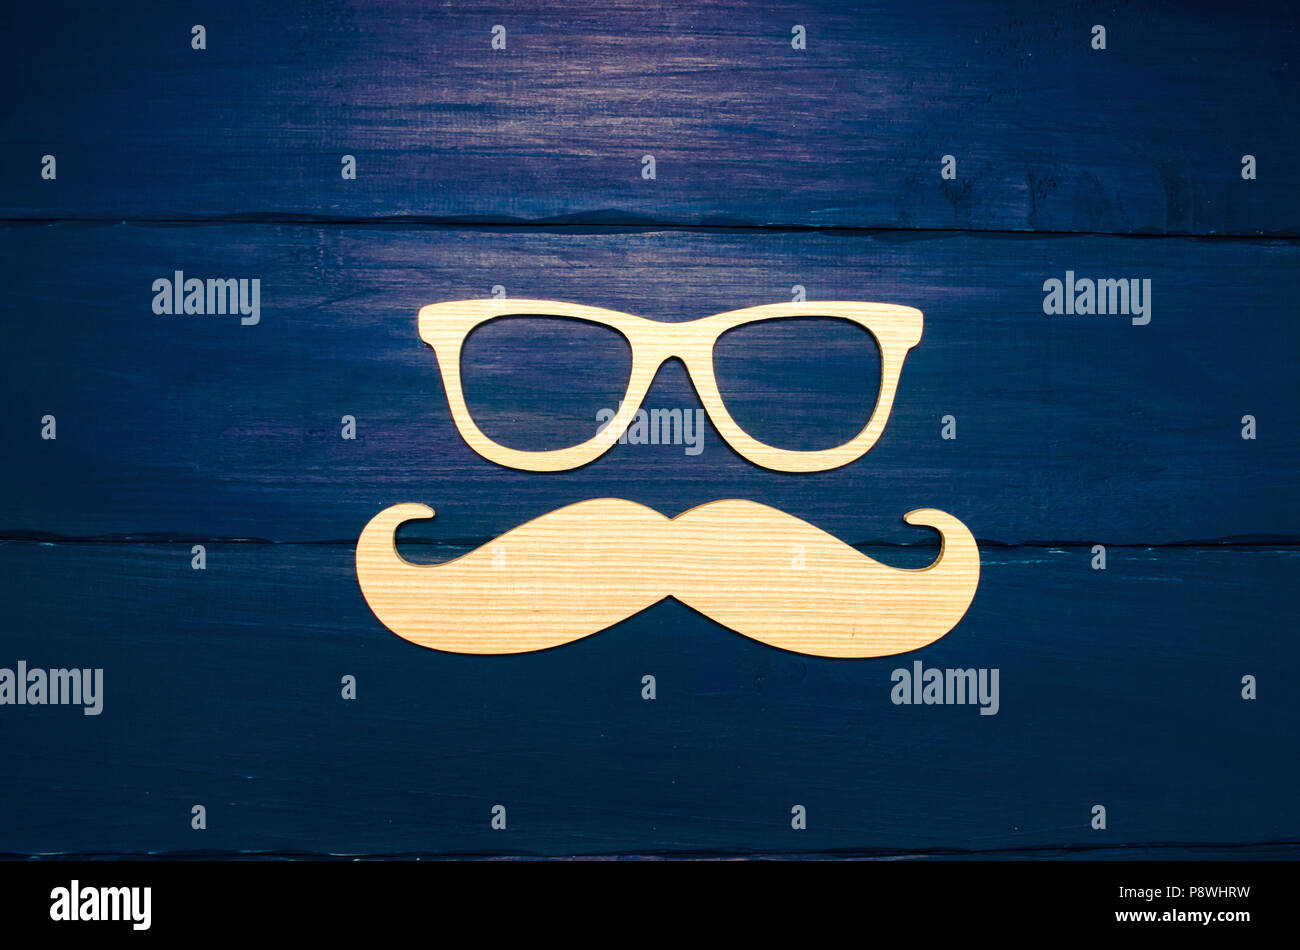 hipster theme stock photos hipster theme stock images alamy